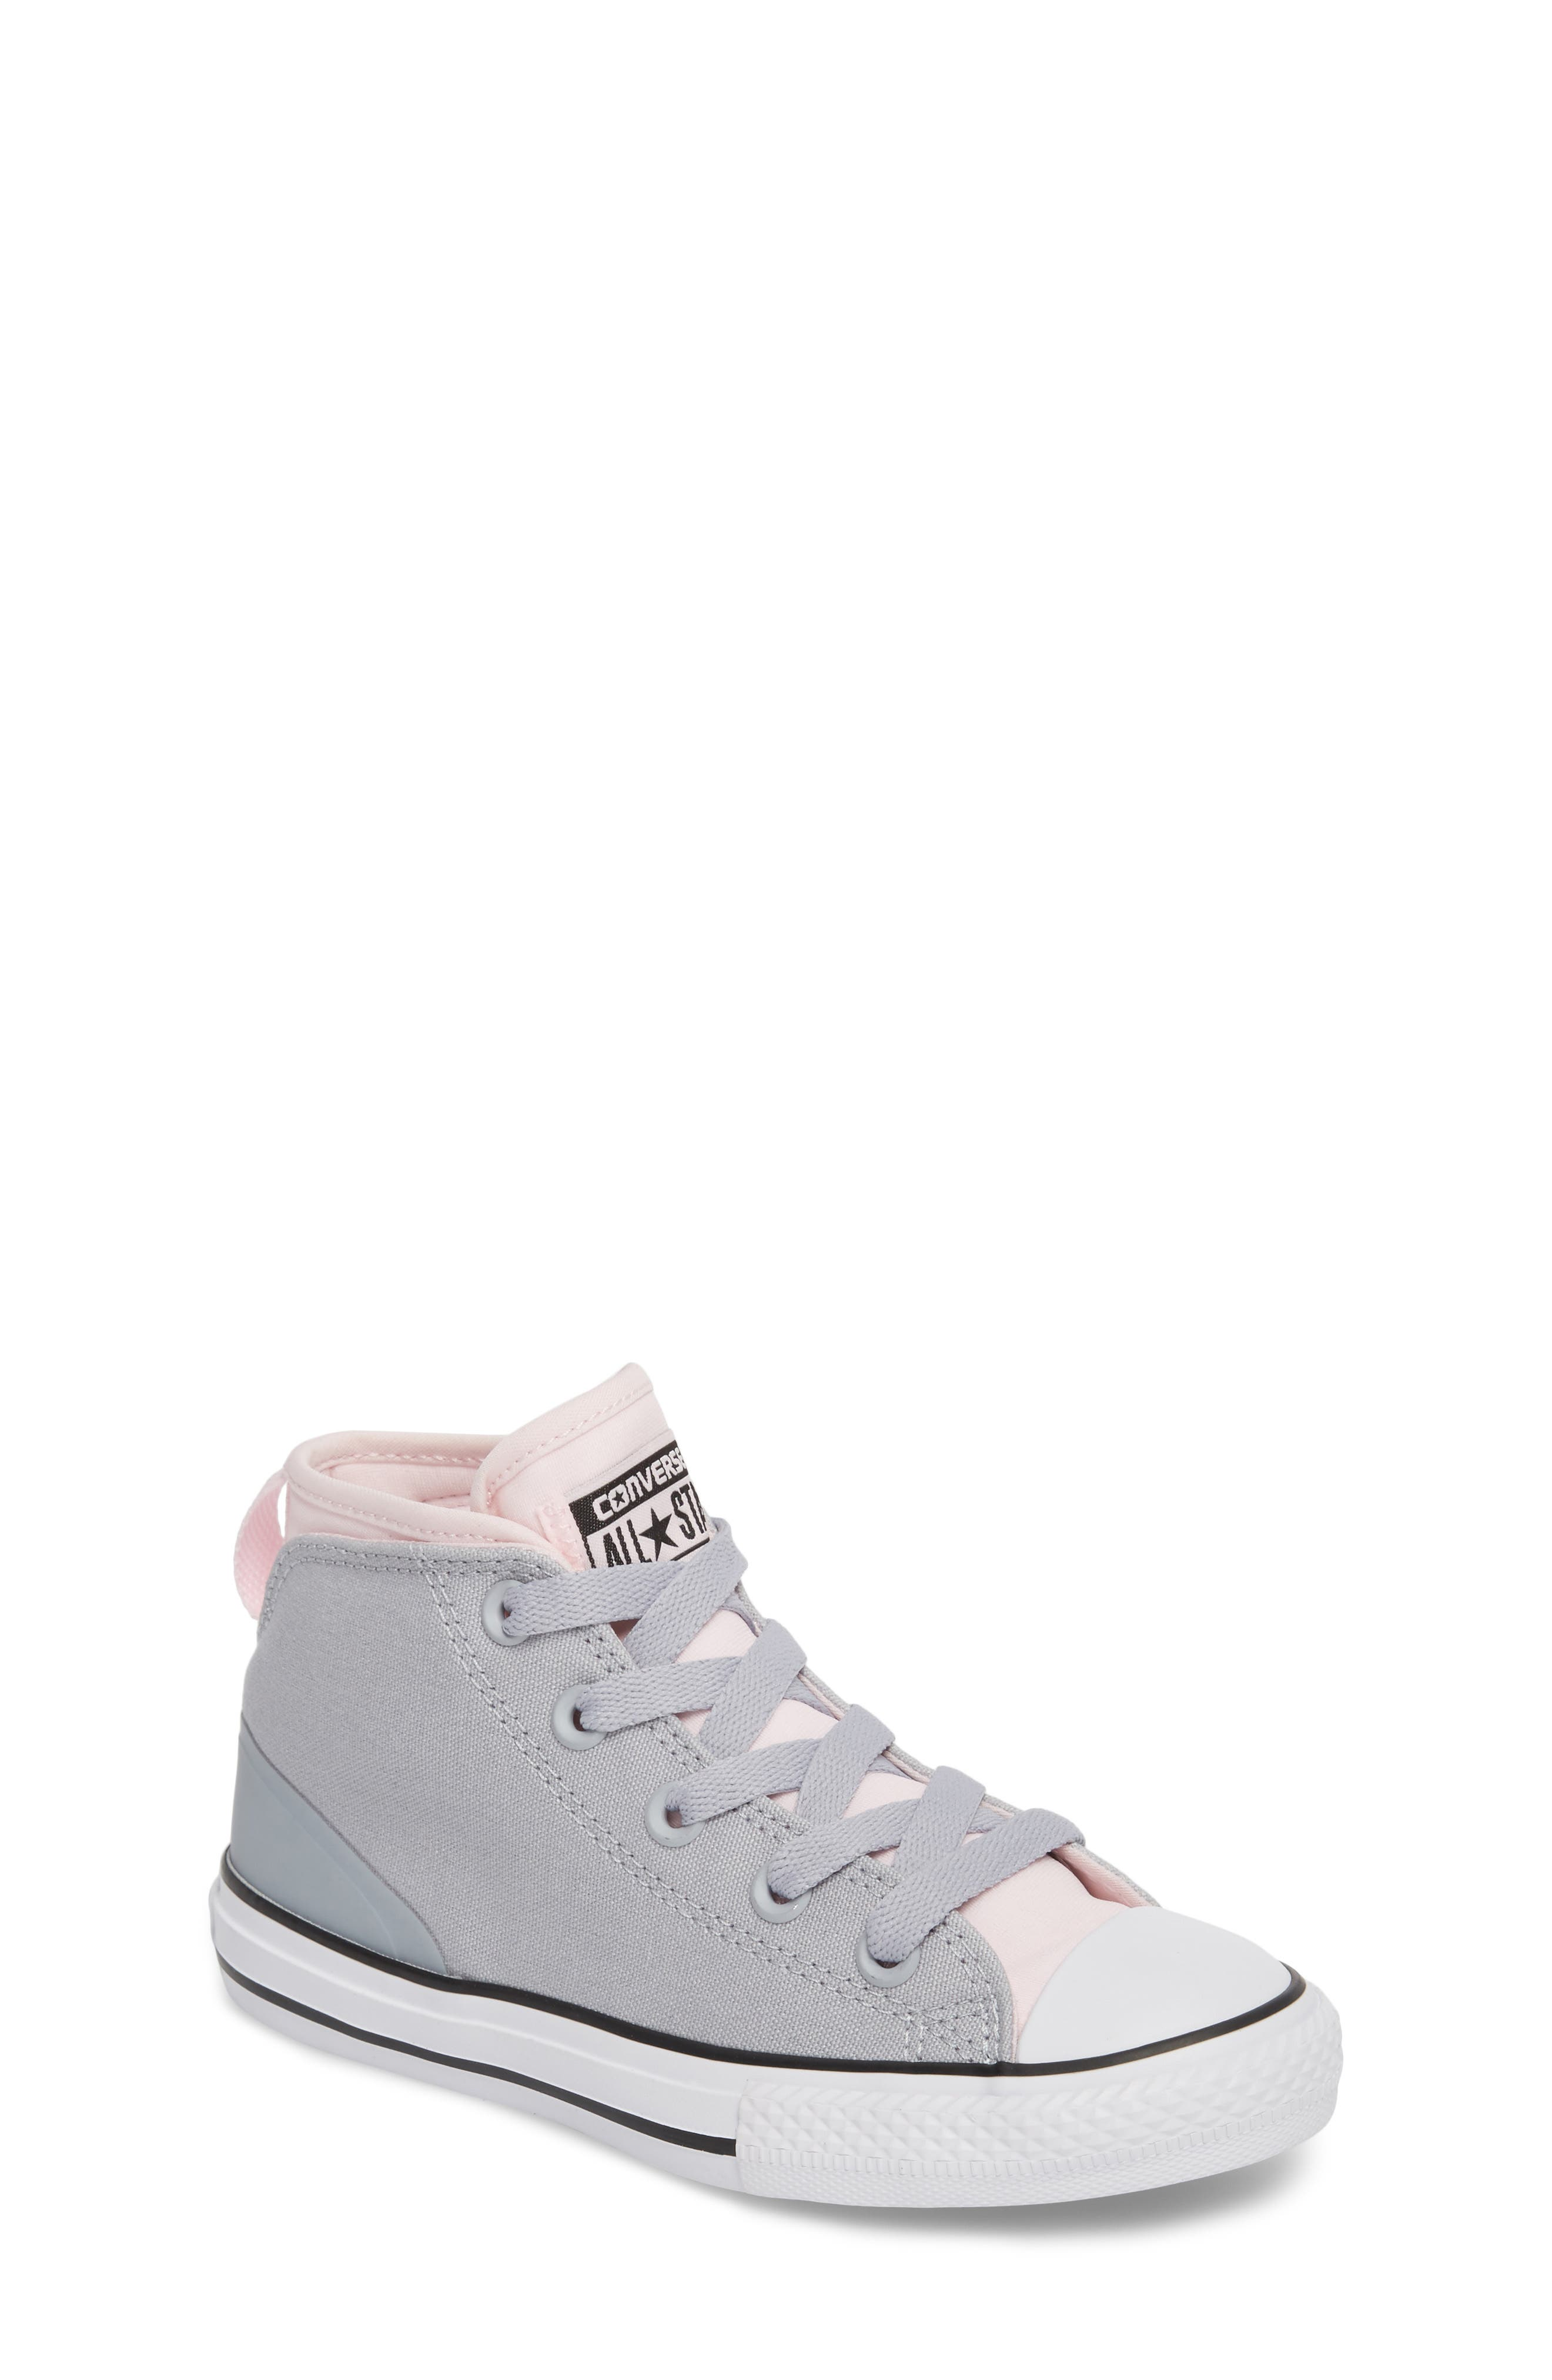 Main Image - Converse Chuck Taylor® All Star® Syde Street High Top Sneaker (Baby, Walker, Toddler, Little Kid & Big Kid)